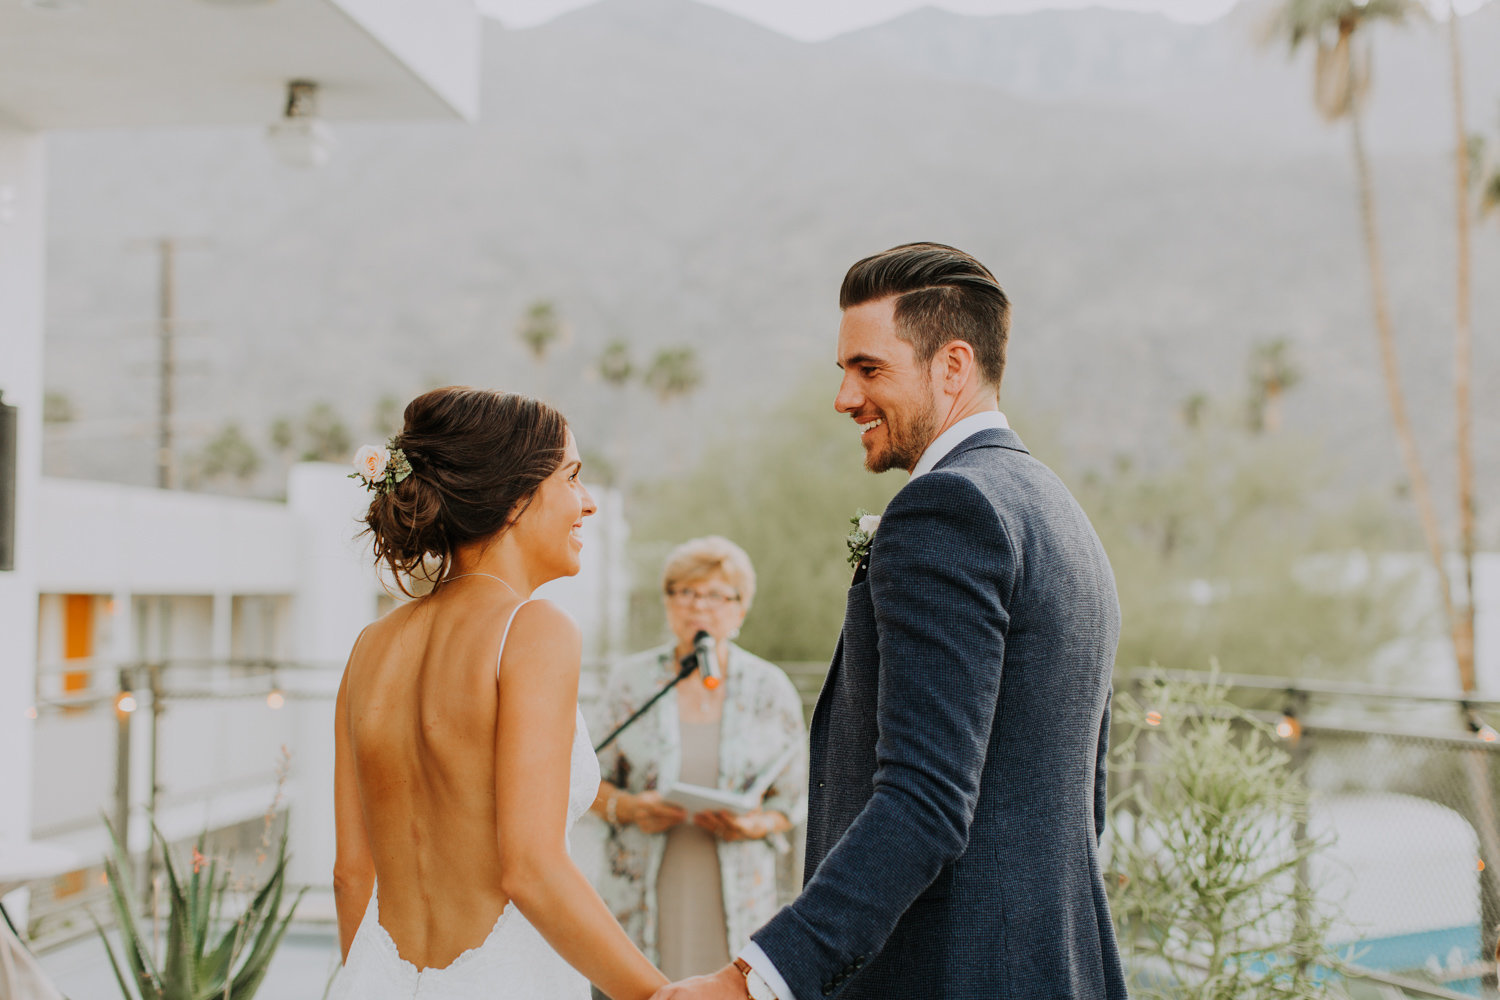 Brianna Broyles_Palm Springs Wedding Photographer_Ace Hotel Wedding_Ace Hotel Palm Springs-42